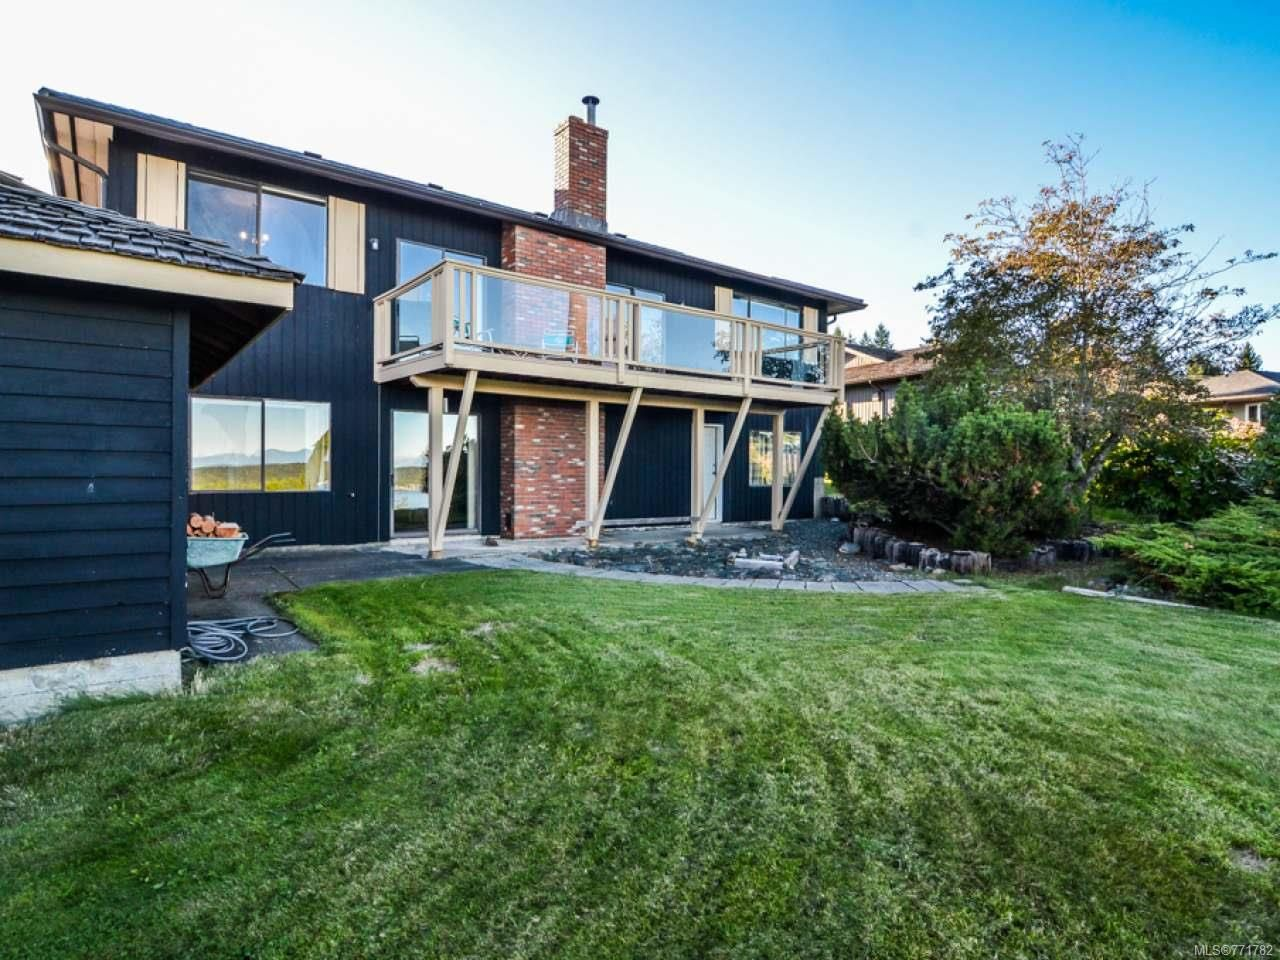 Photo 11: Photos: 451 S McLean St in CAMPBELL RIVER: CR Campbell River Central House for sale (Campbell River)  : MLS®# 771782